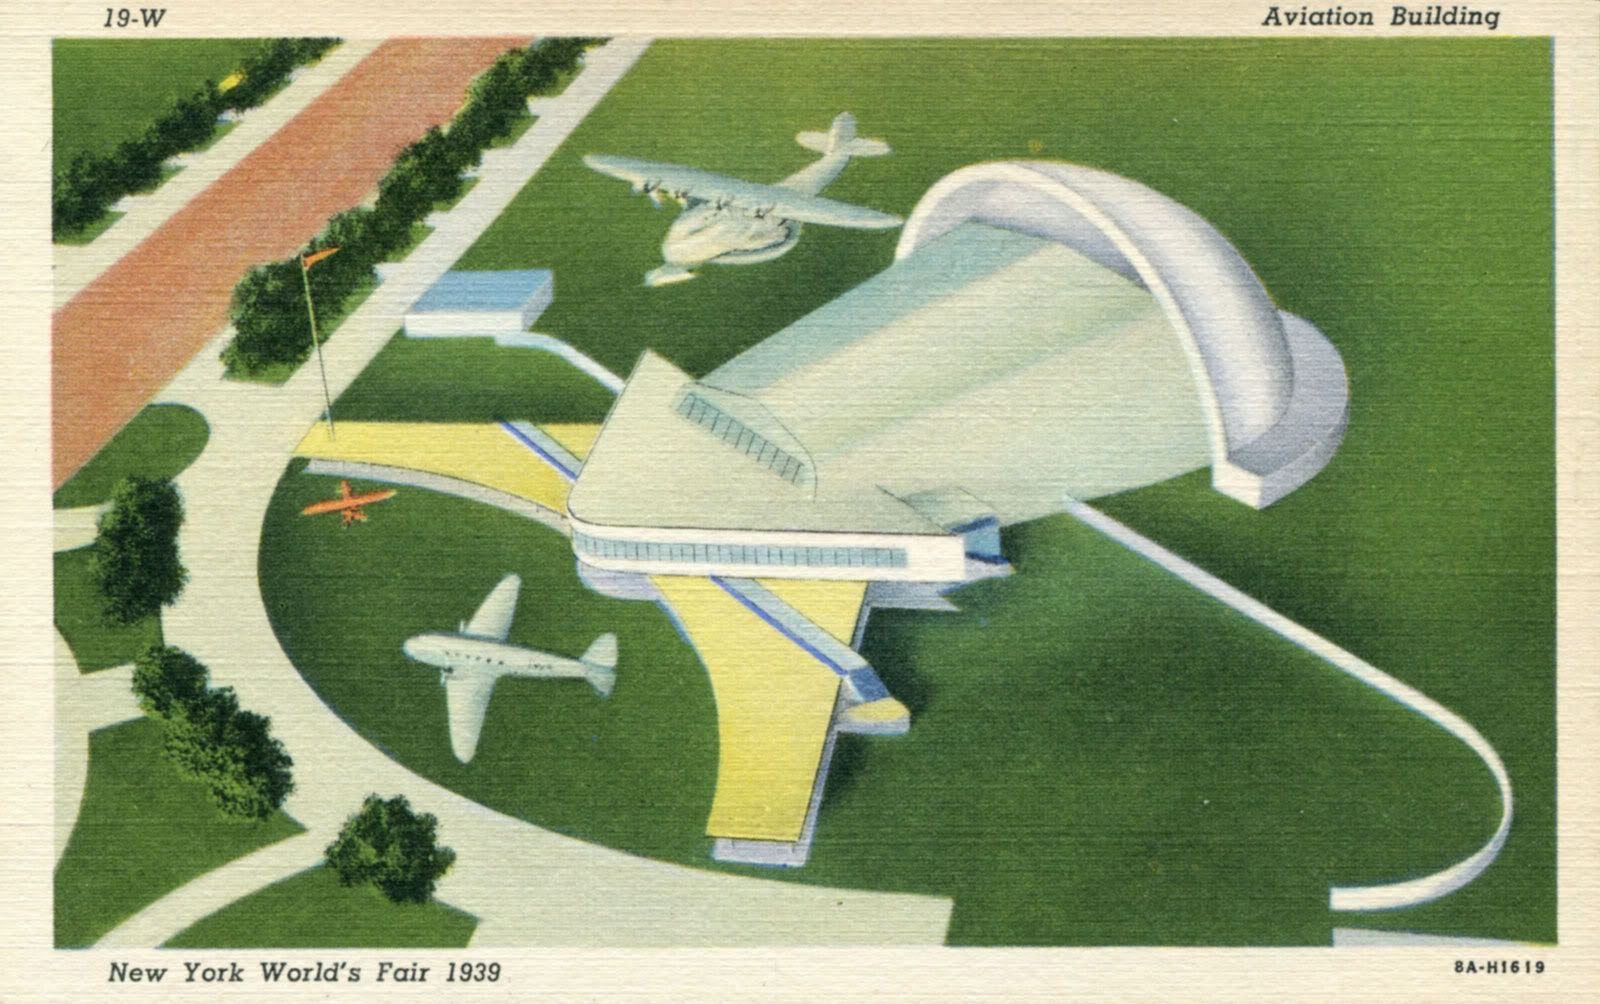 Aviation Building,  New York World's Fair, 1939. Airplane inside simulated flight with propellors spinning, clouds moving.